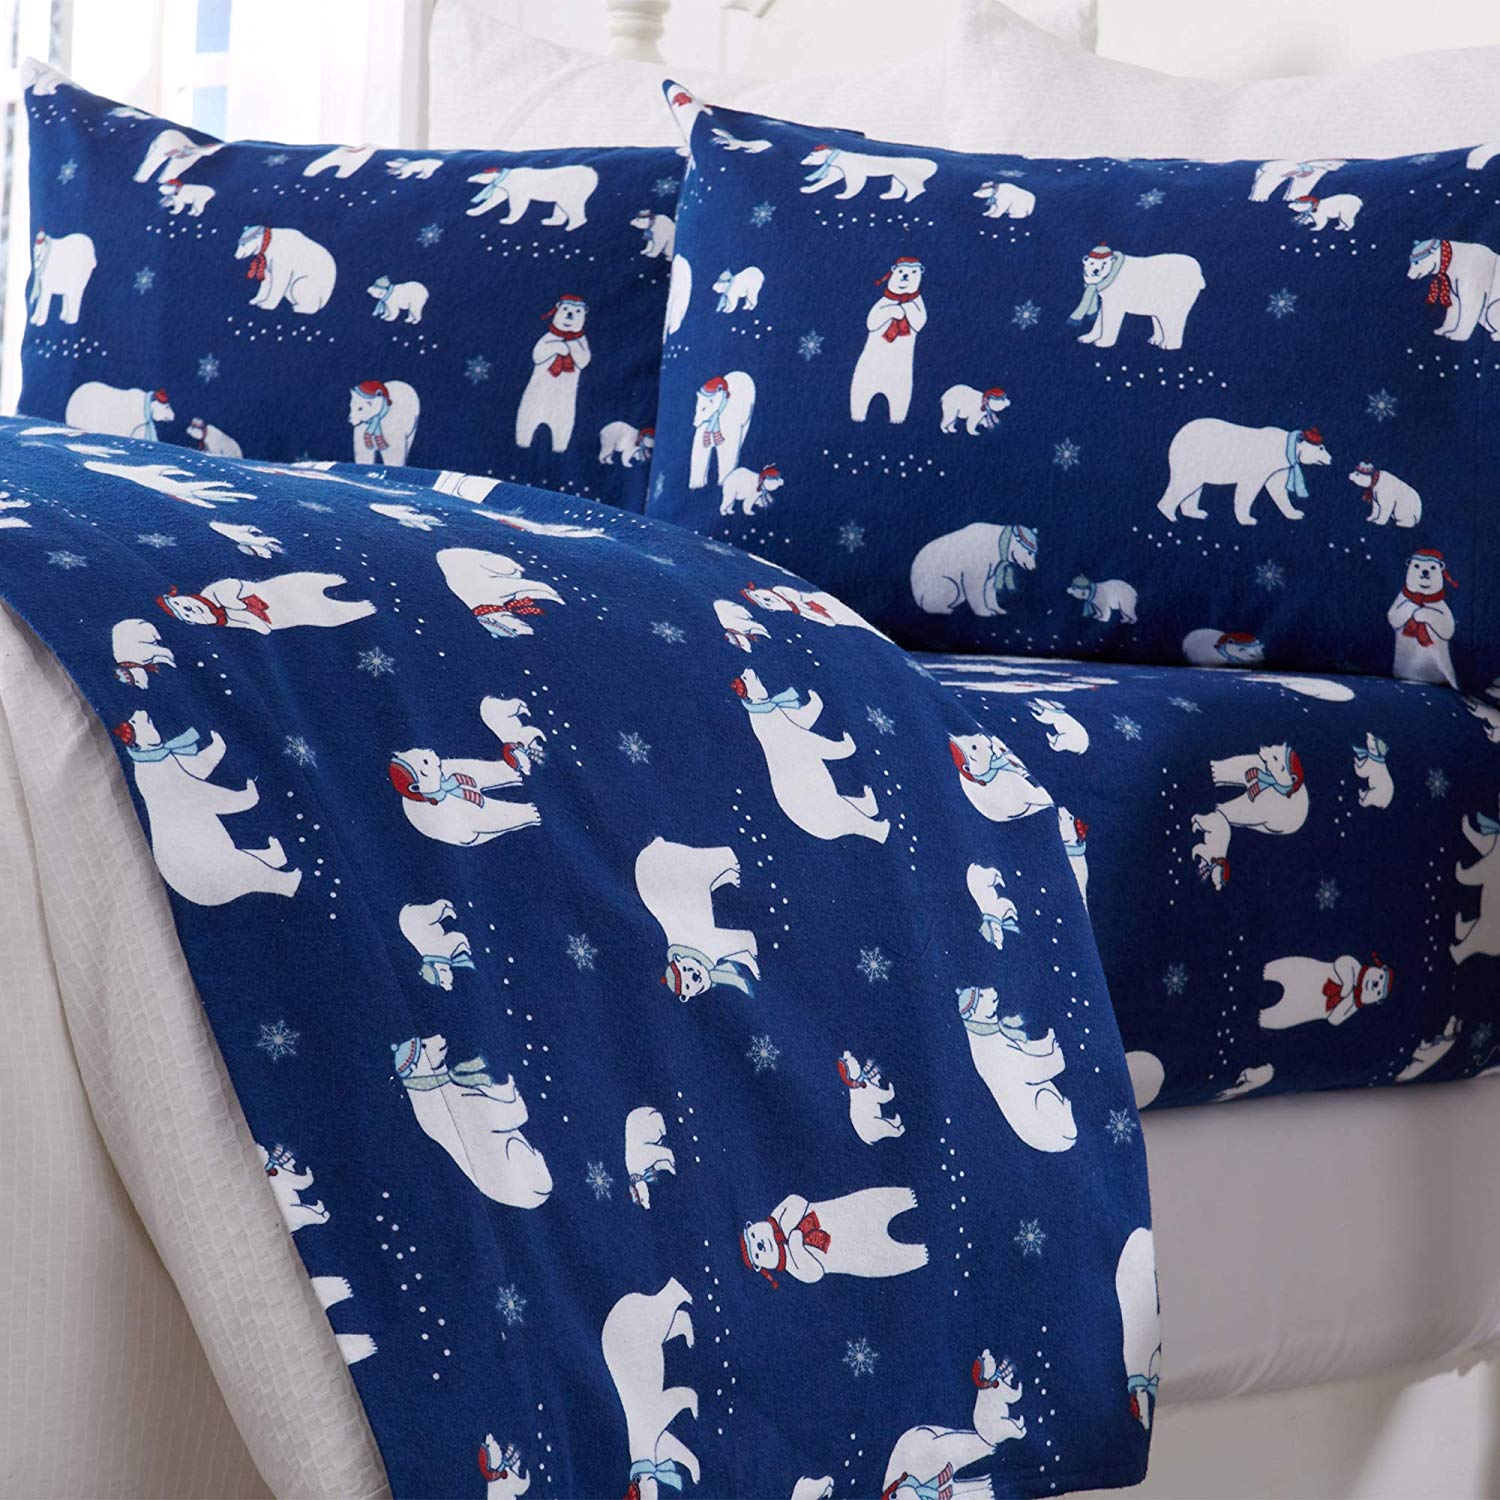 Great Bay Home Extra Soft Printed 100% Turkish Cotton Flannel Sheet Set. Warm, Cozy, Luxury Winter Bed Sheets. Belle Collection (Full, Navy Polar Bears)